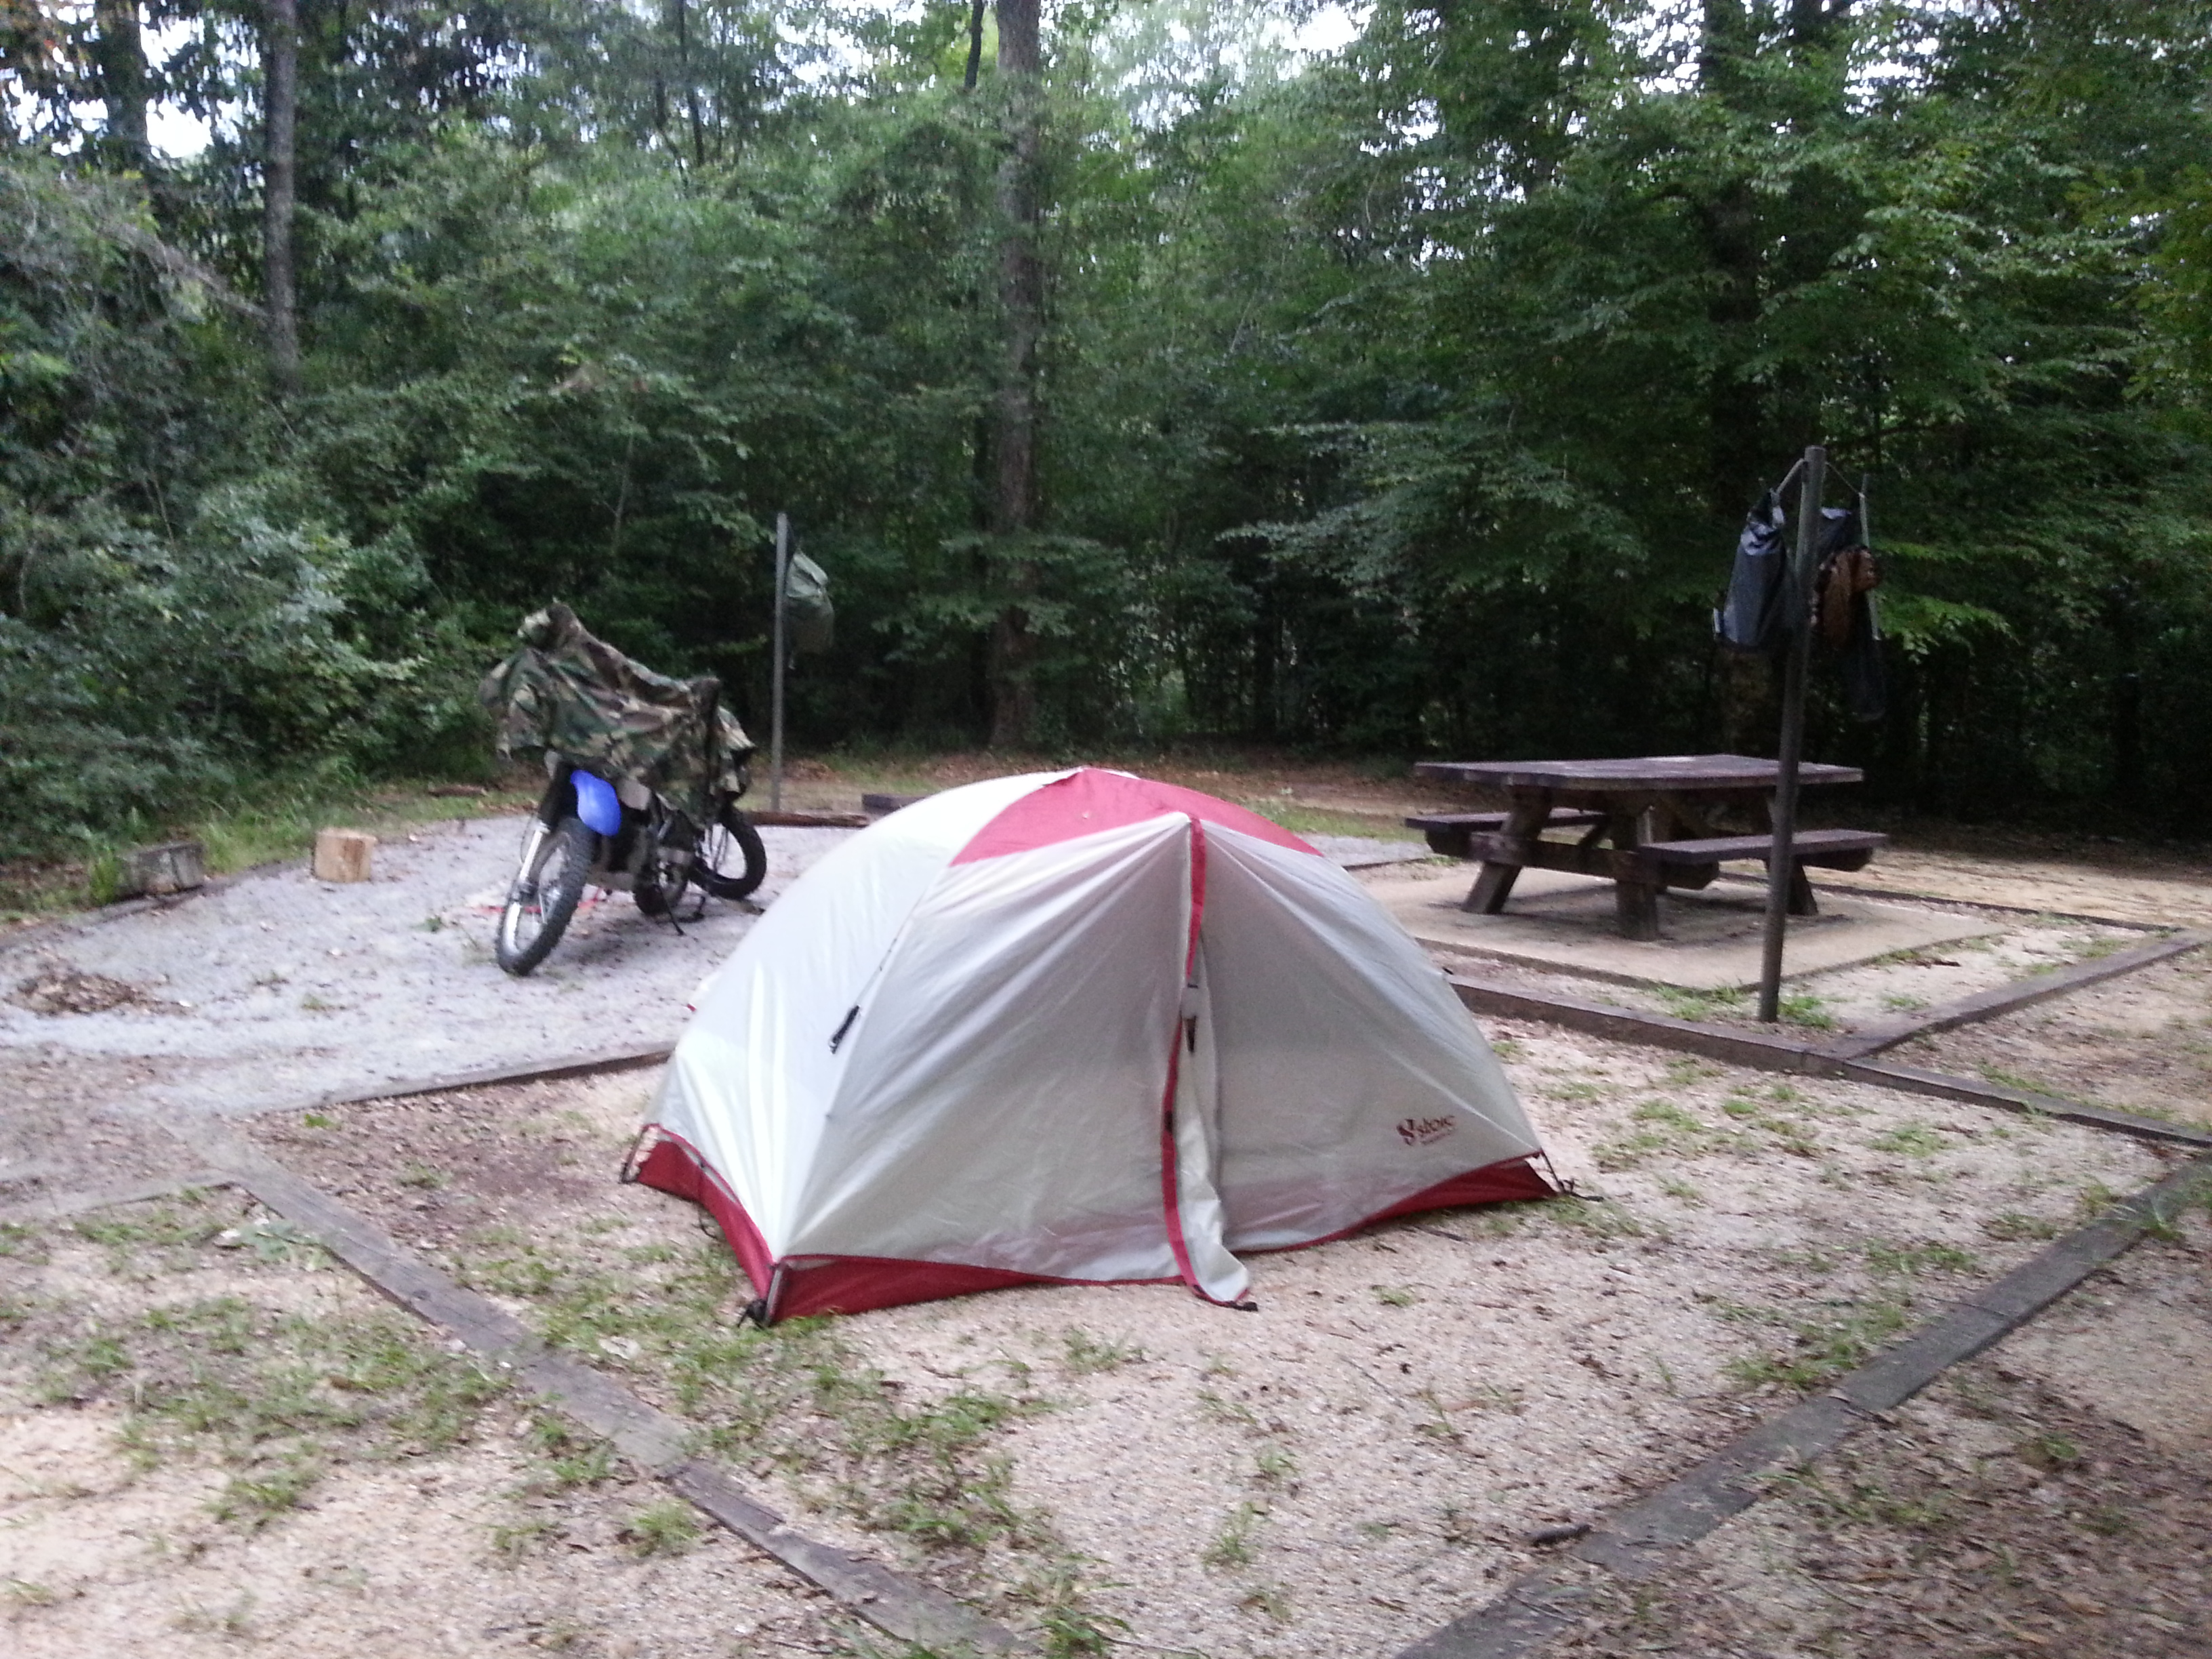 My campsite in the Desoto National Forest